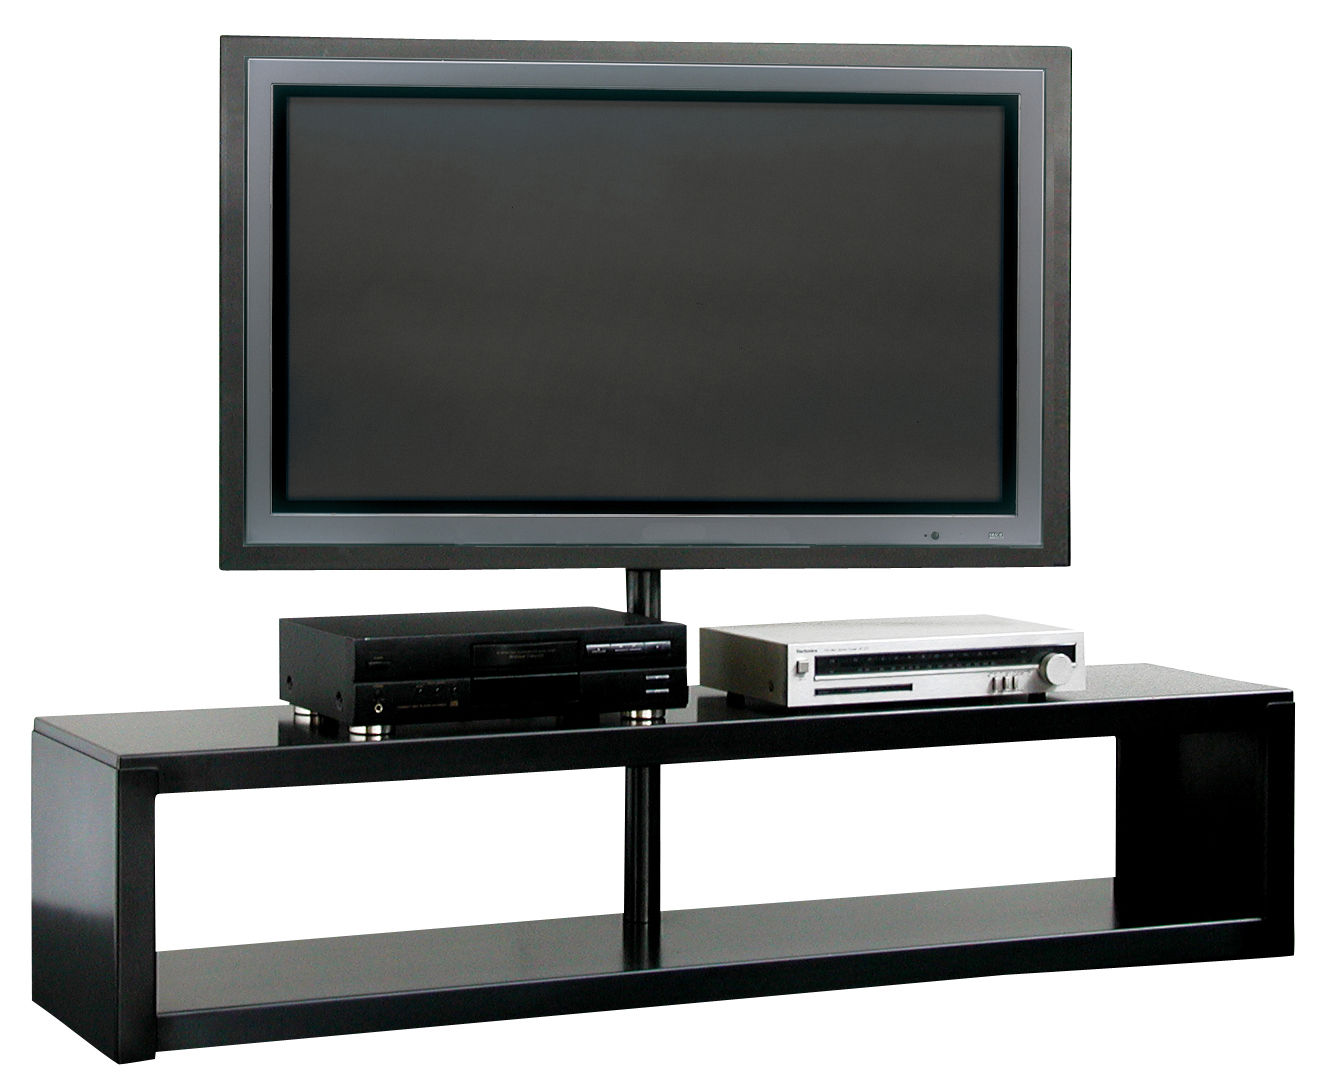 Meuble Tv Big Irony Plasma Support D Cran Plat Acier Phosphat  # Meuble Tv Ultra Fin